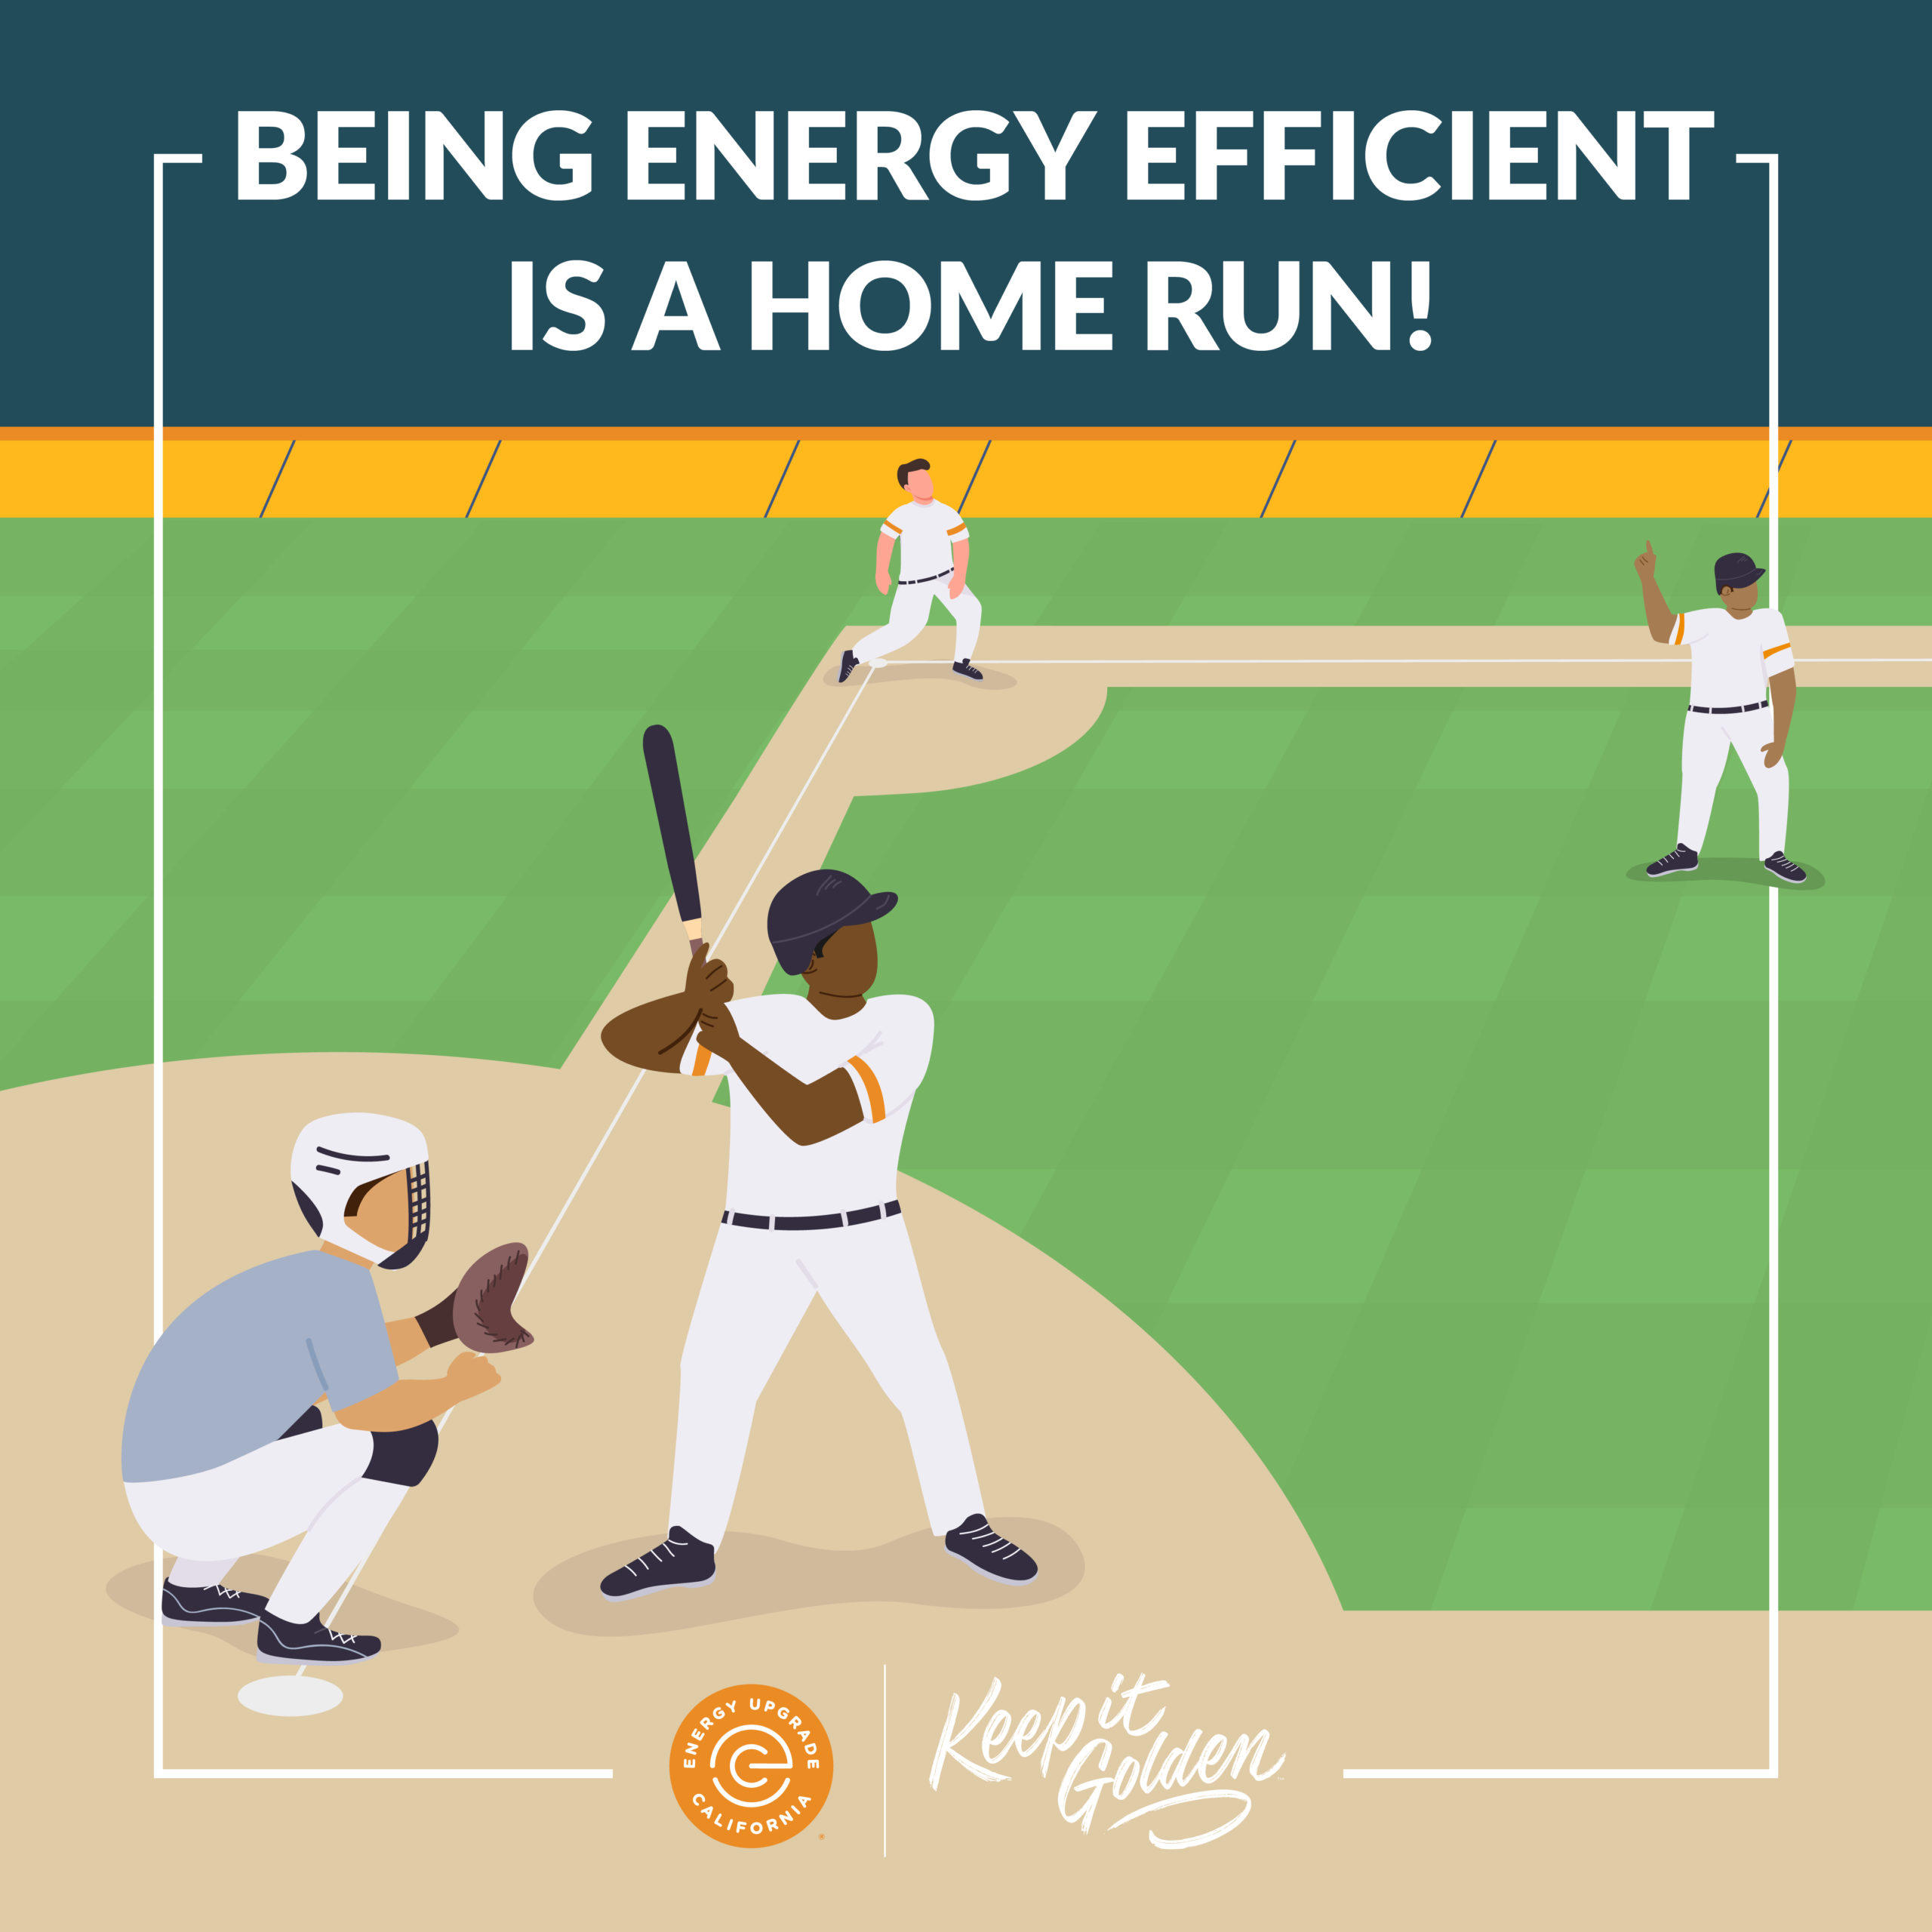 The World Series is back! As you gather around to root for your favorite team, be sure to power down other appliances and devices. When we power down from 4-9 to use more clean energy, it's a win for everyone! #KeepItGolden